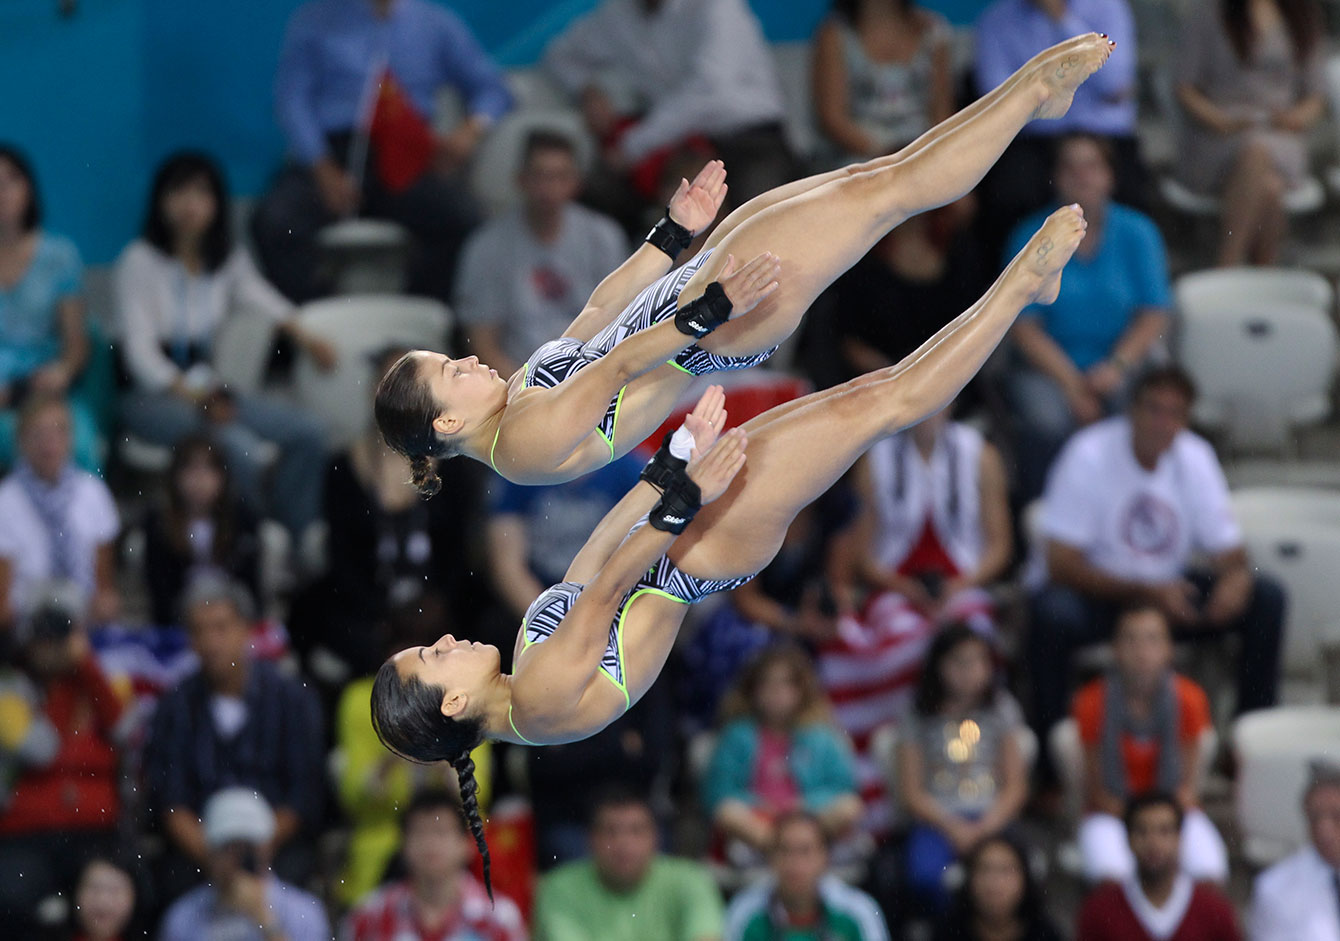 Roseline Filion (foreground) and Meaghan Benfeito diving at London 2012.